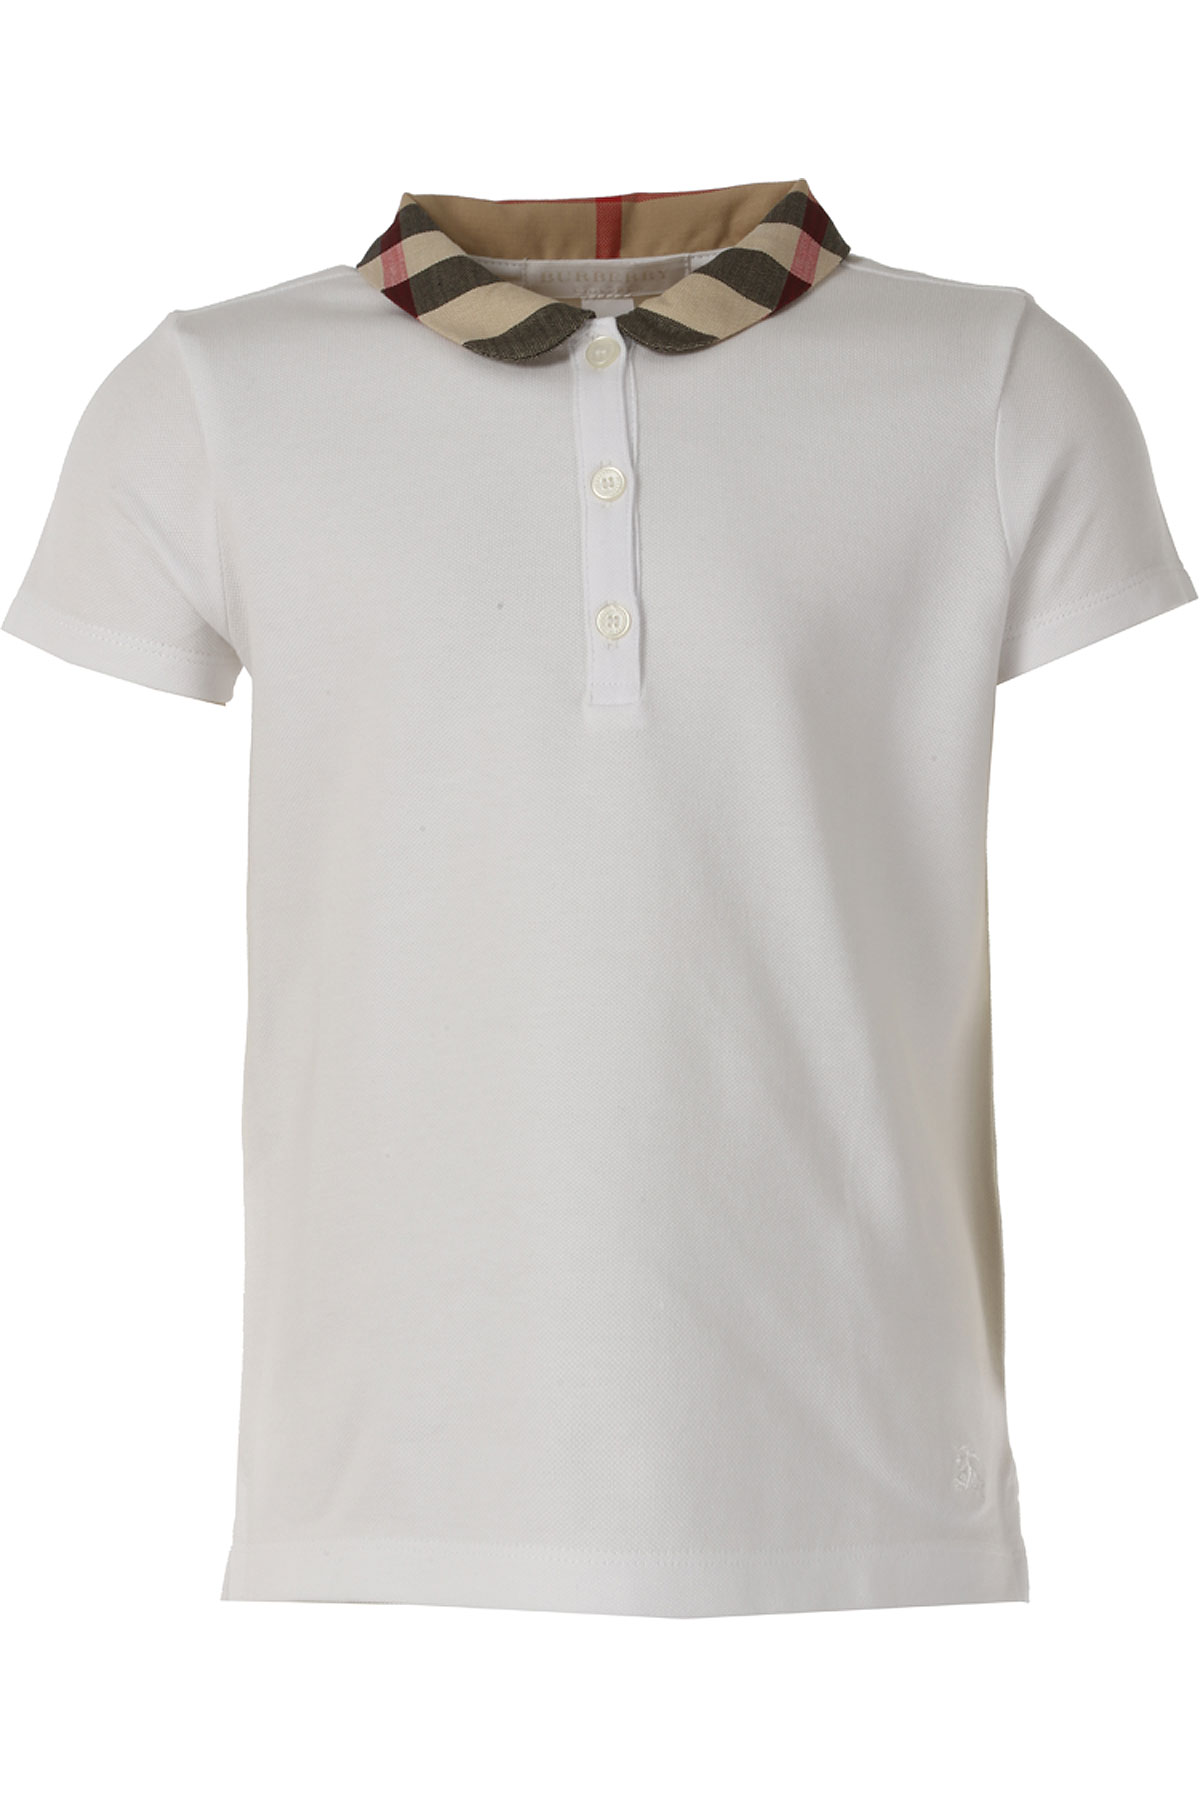 Image of Burberry Kids Polo Shirt for Girls On Sale in Outlet, White, Cotton, 2017, 10Y 4Y 8Y